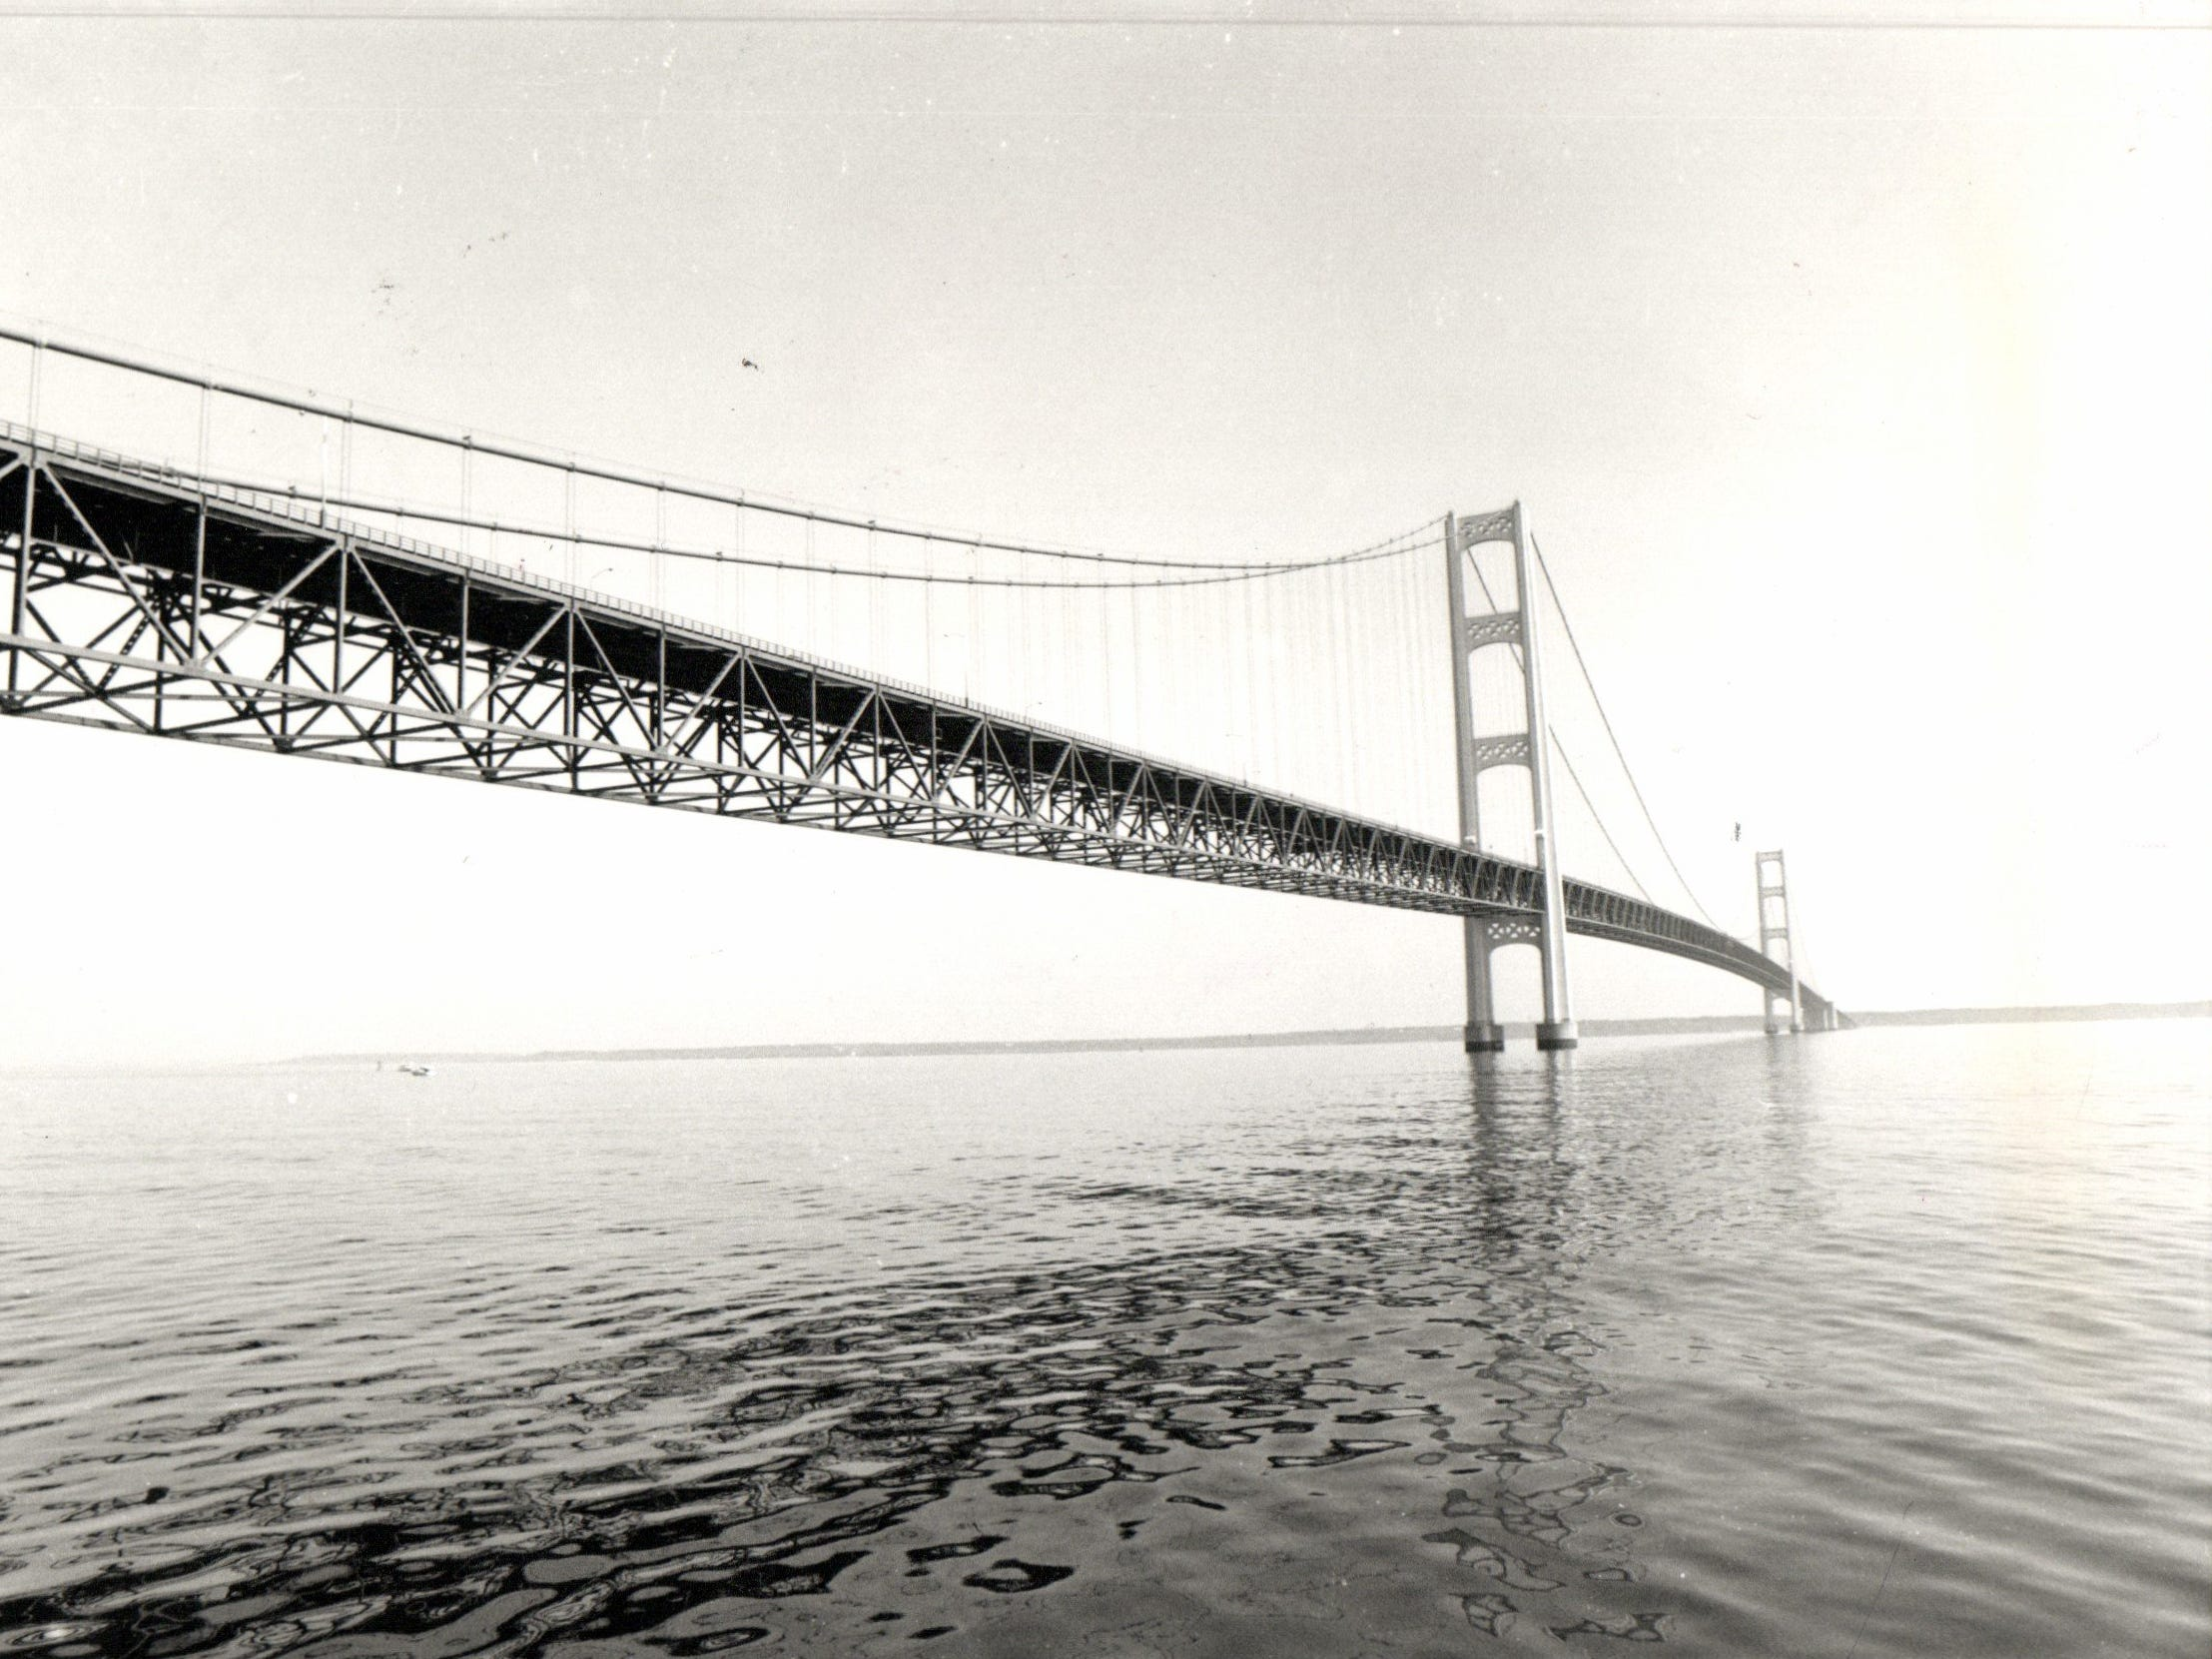 "Opened in 1957, the bridge (familiarly known as ""Big Mac"" and ""Mighty Mac"") is the third longest in total suspension in the world and the longest suspension bridge between anchorages in the Western hemisphere. The Mackinac Bridge carries Interstate 75 across the straits and connects the city of St. Ignace on the north end with the village of Mackinaw City on the south.